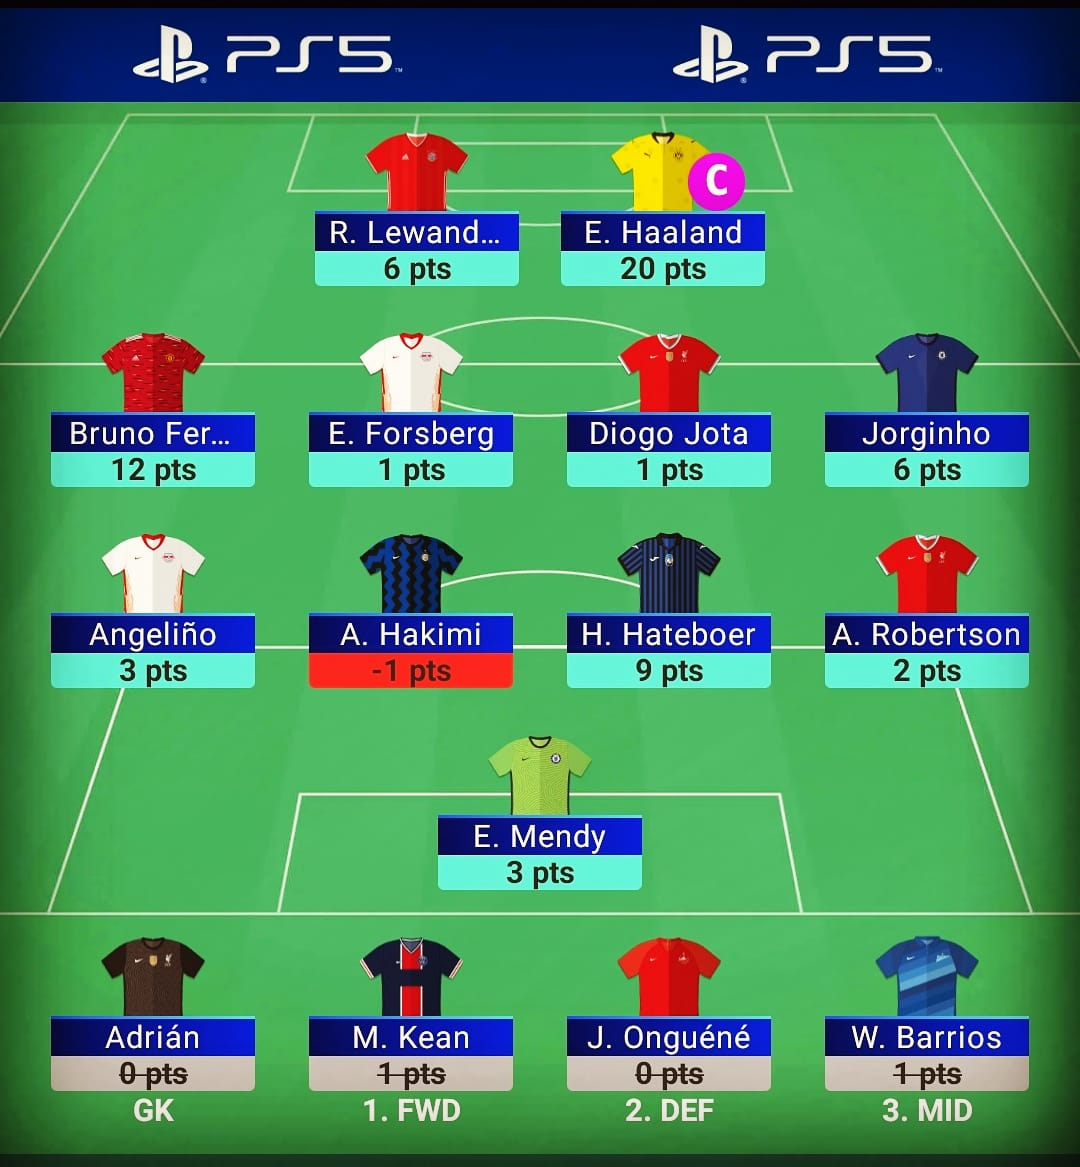 Match day 4 - 62 pts  OR 🌍 28k  Fairly average match day.  Got the captaincy right with Haaland 💪🏼  Robbo and Jota not starting wasn't ideal, Hakimi - 1 😬  Need to sort out a second choice GKP  and get rid of deadwood for next week,   #UCL #UCLFantasy